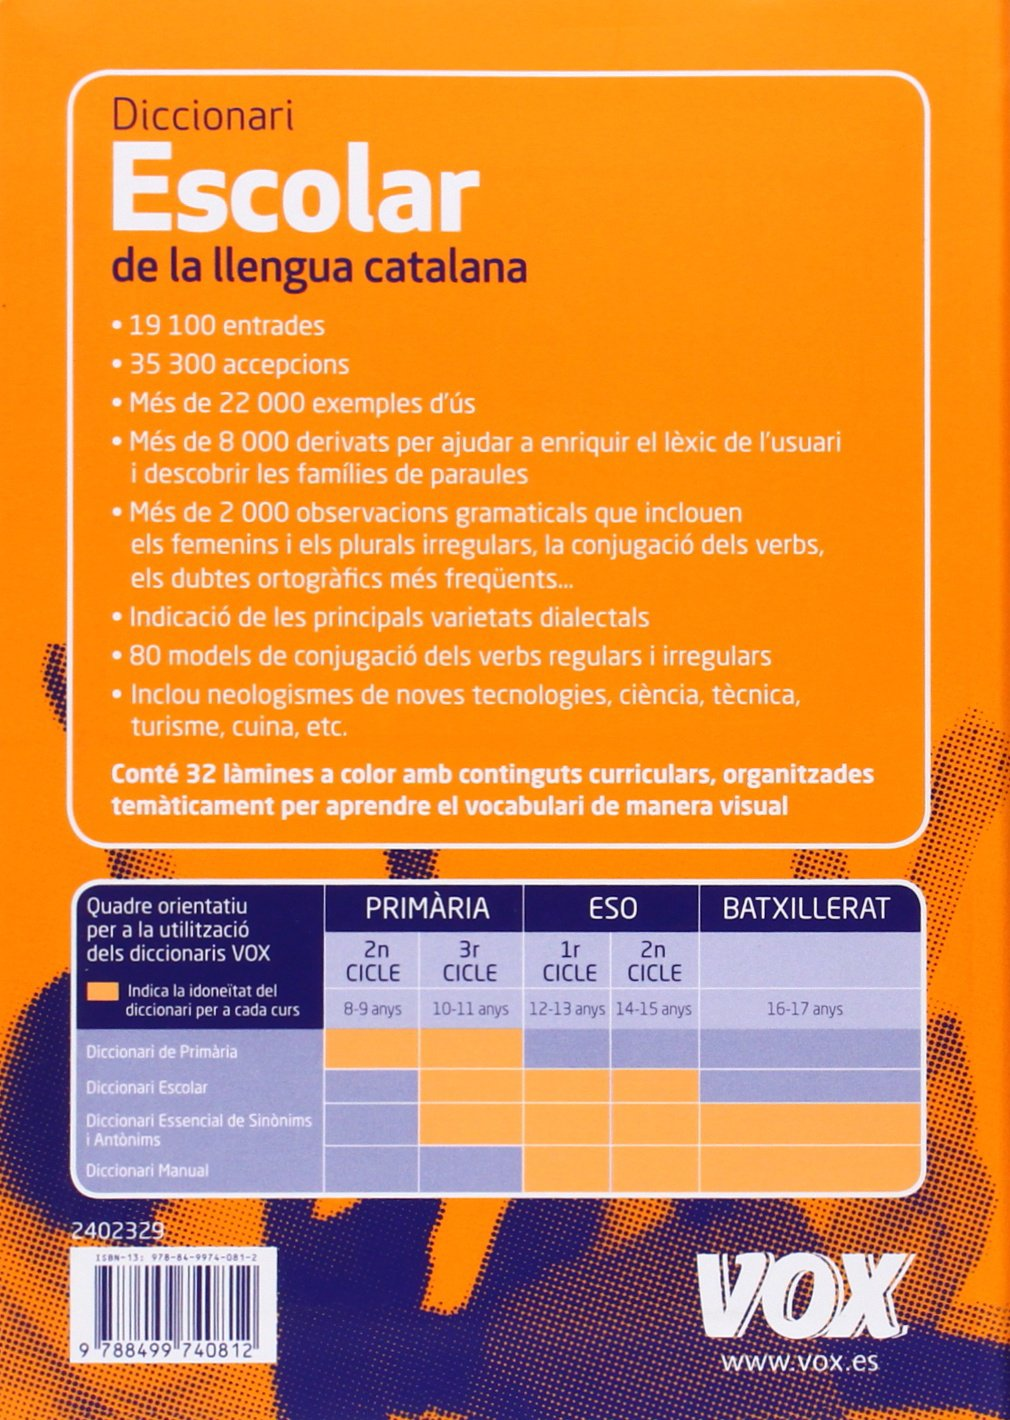 Diccionari escolar de la llengua catalana / School of Catalan Dictionary:  Amazon.co.uk: Jordi Indurain Pons: 9788499740812: Books